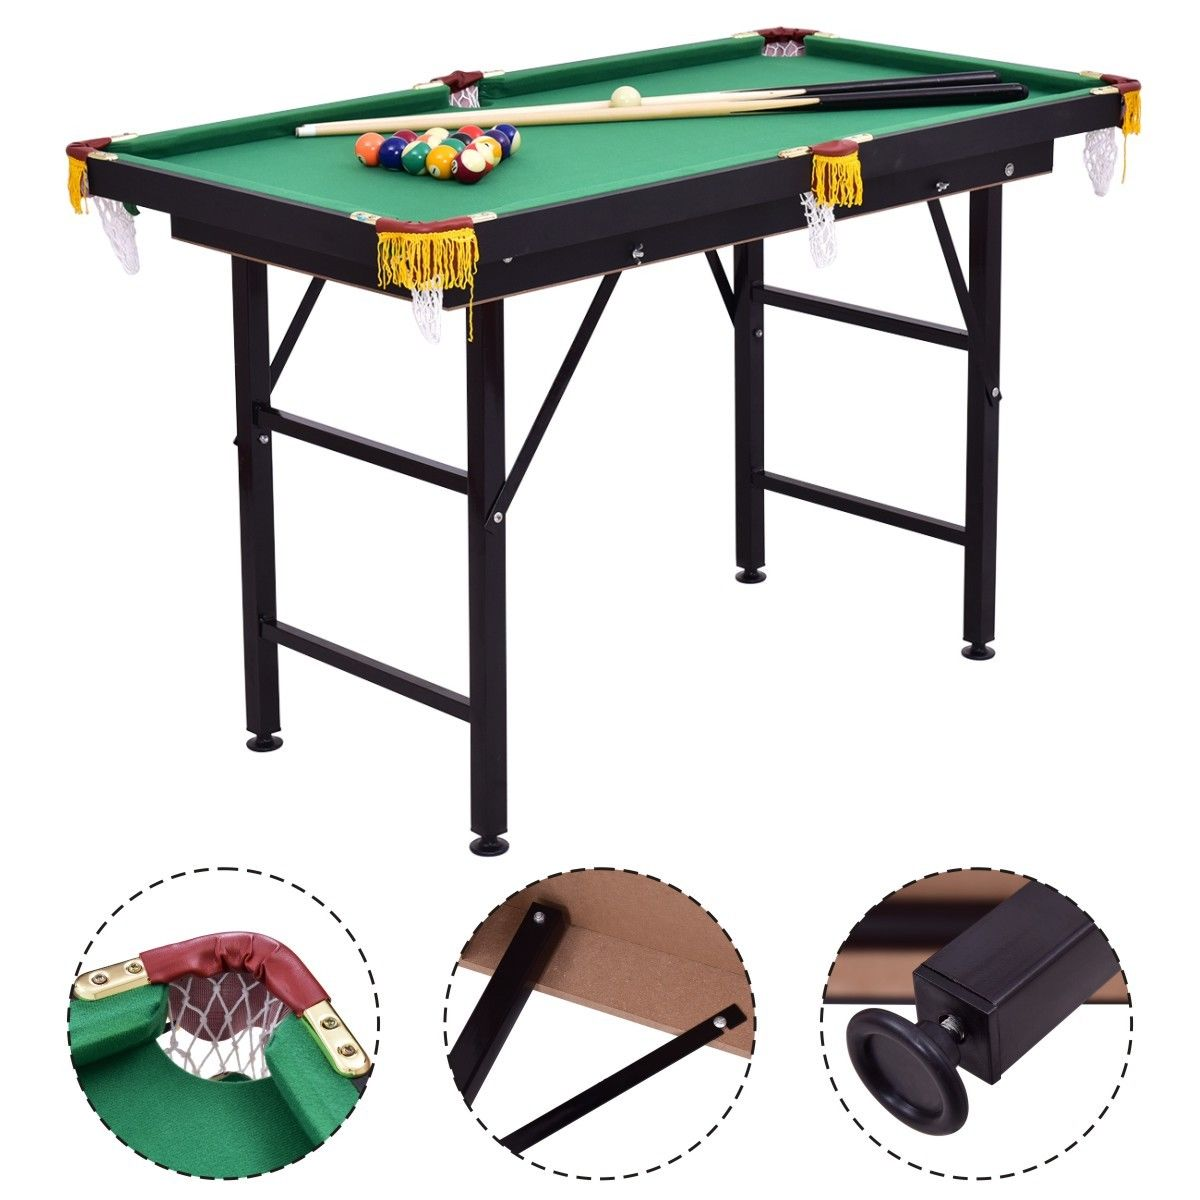 Costway 47'' Pool Table Billiard Table Toys Game Set w 2 Cue Triangle Rack Ball and Chalk